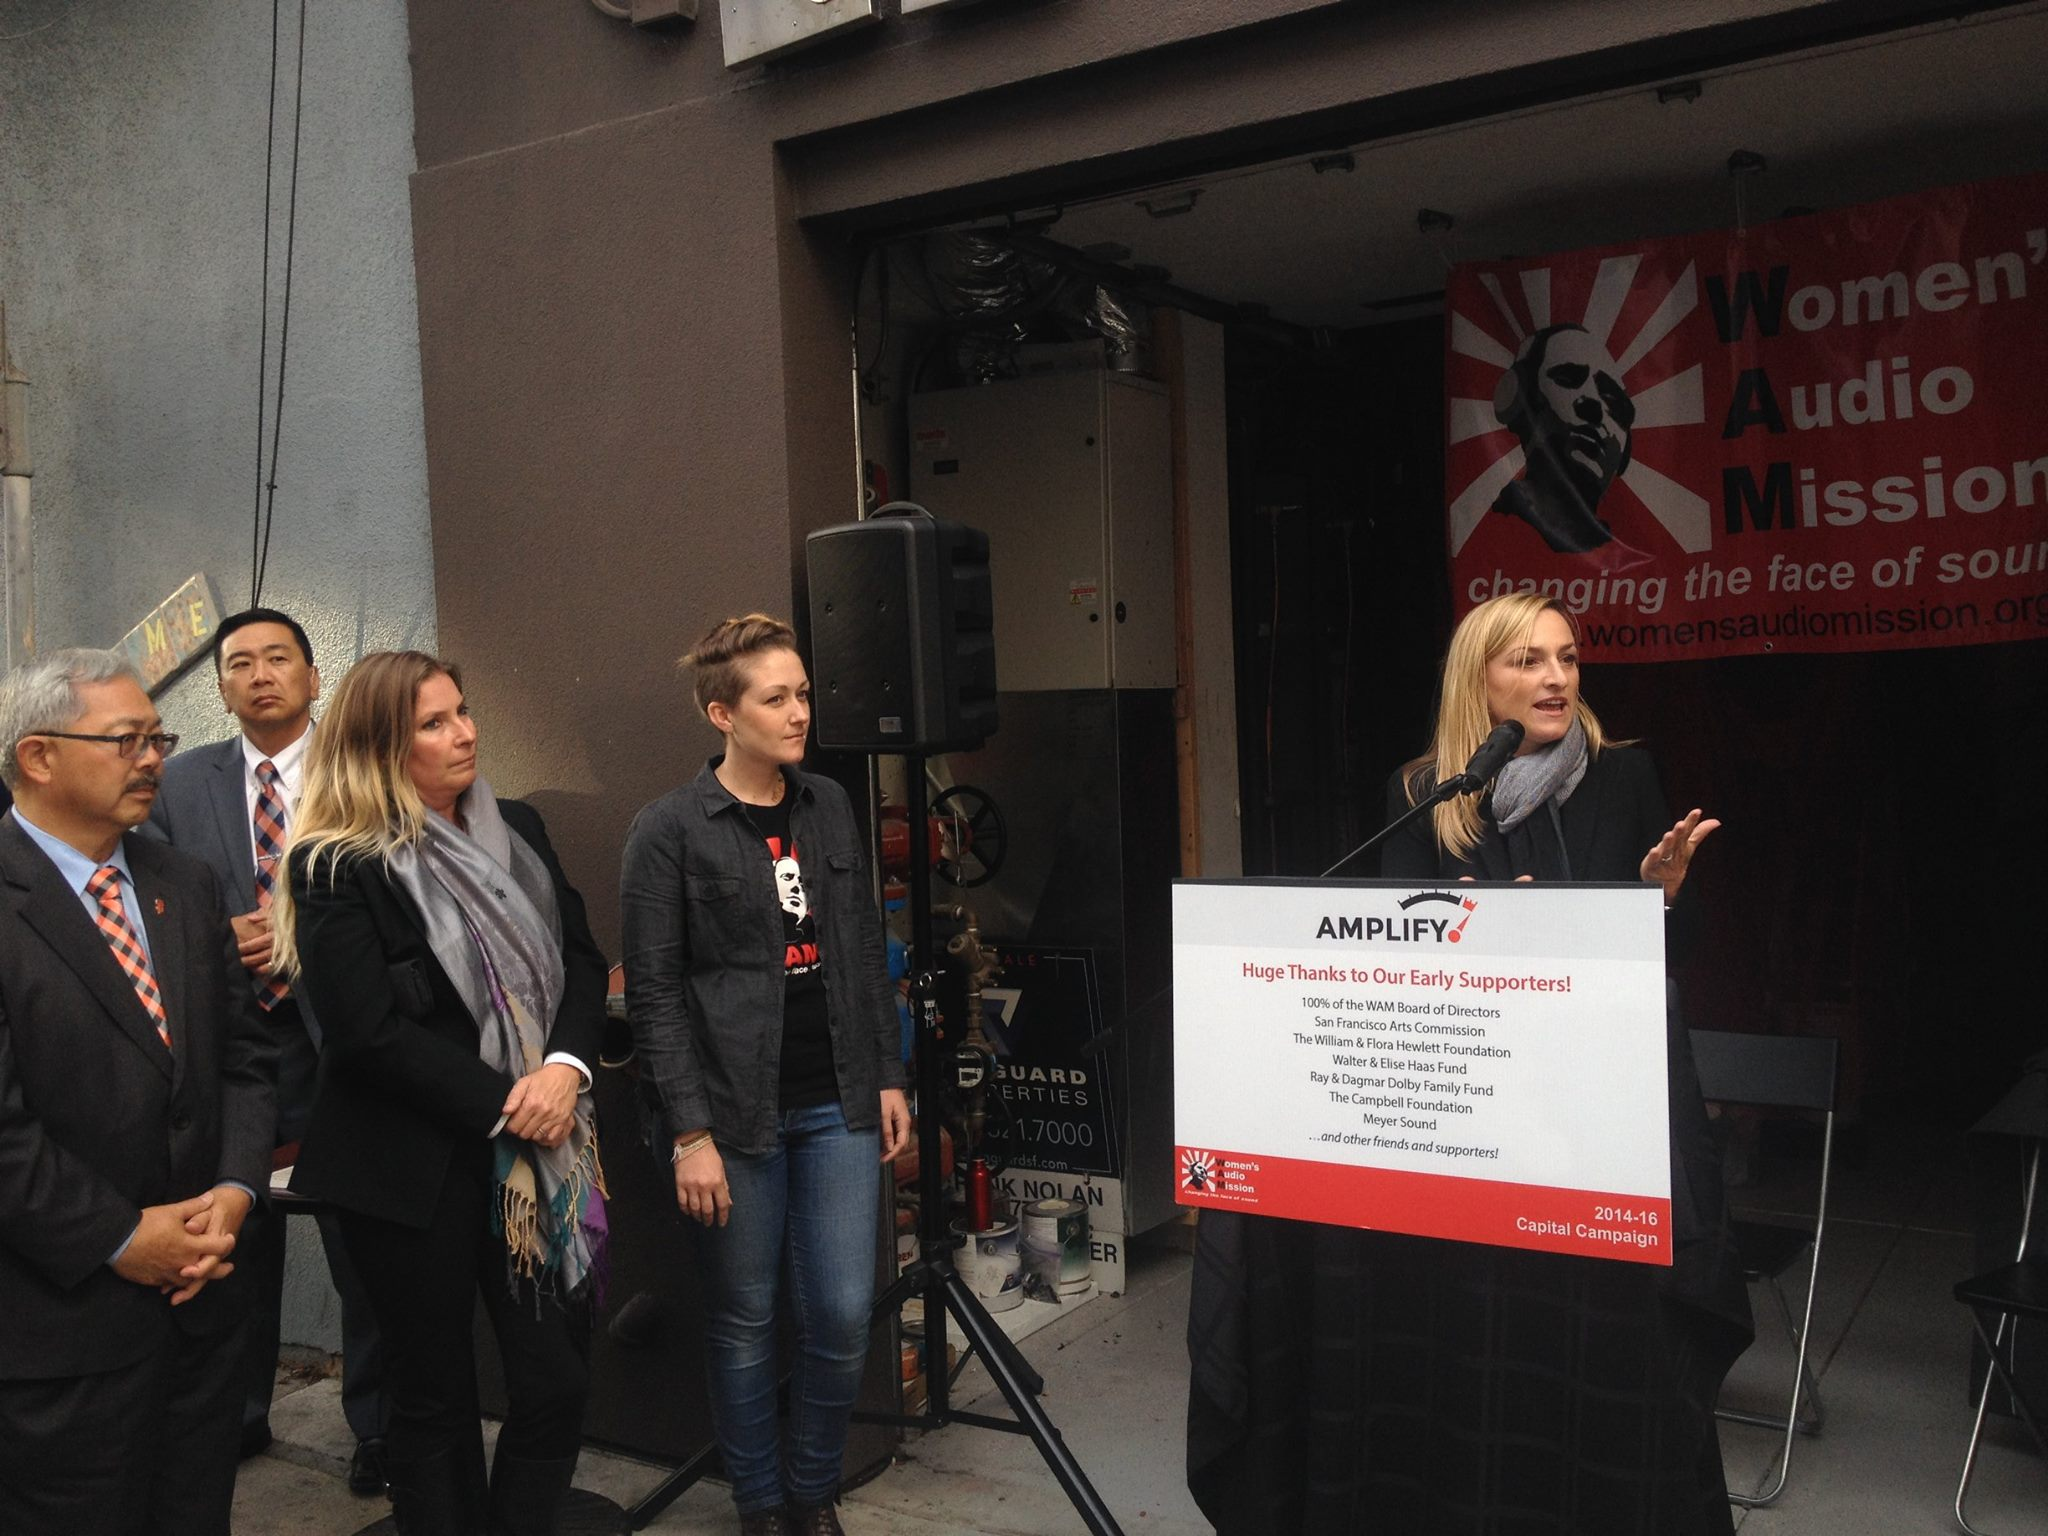 Women's Audio Mission Ribbon Cutting